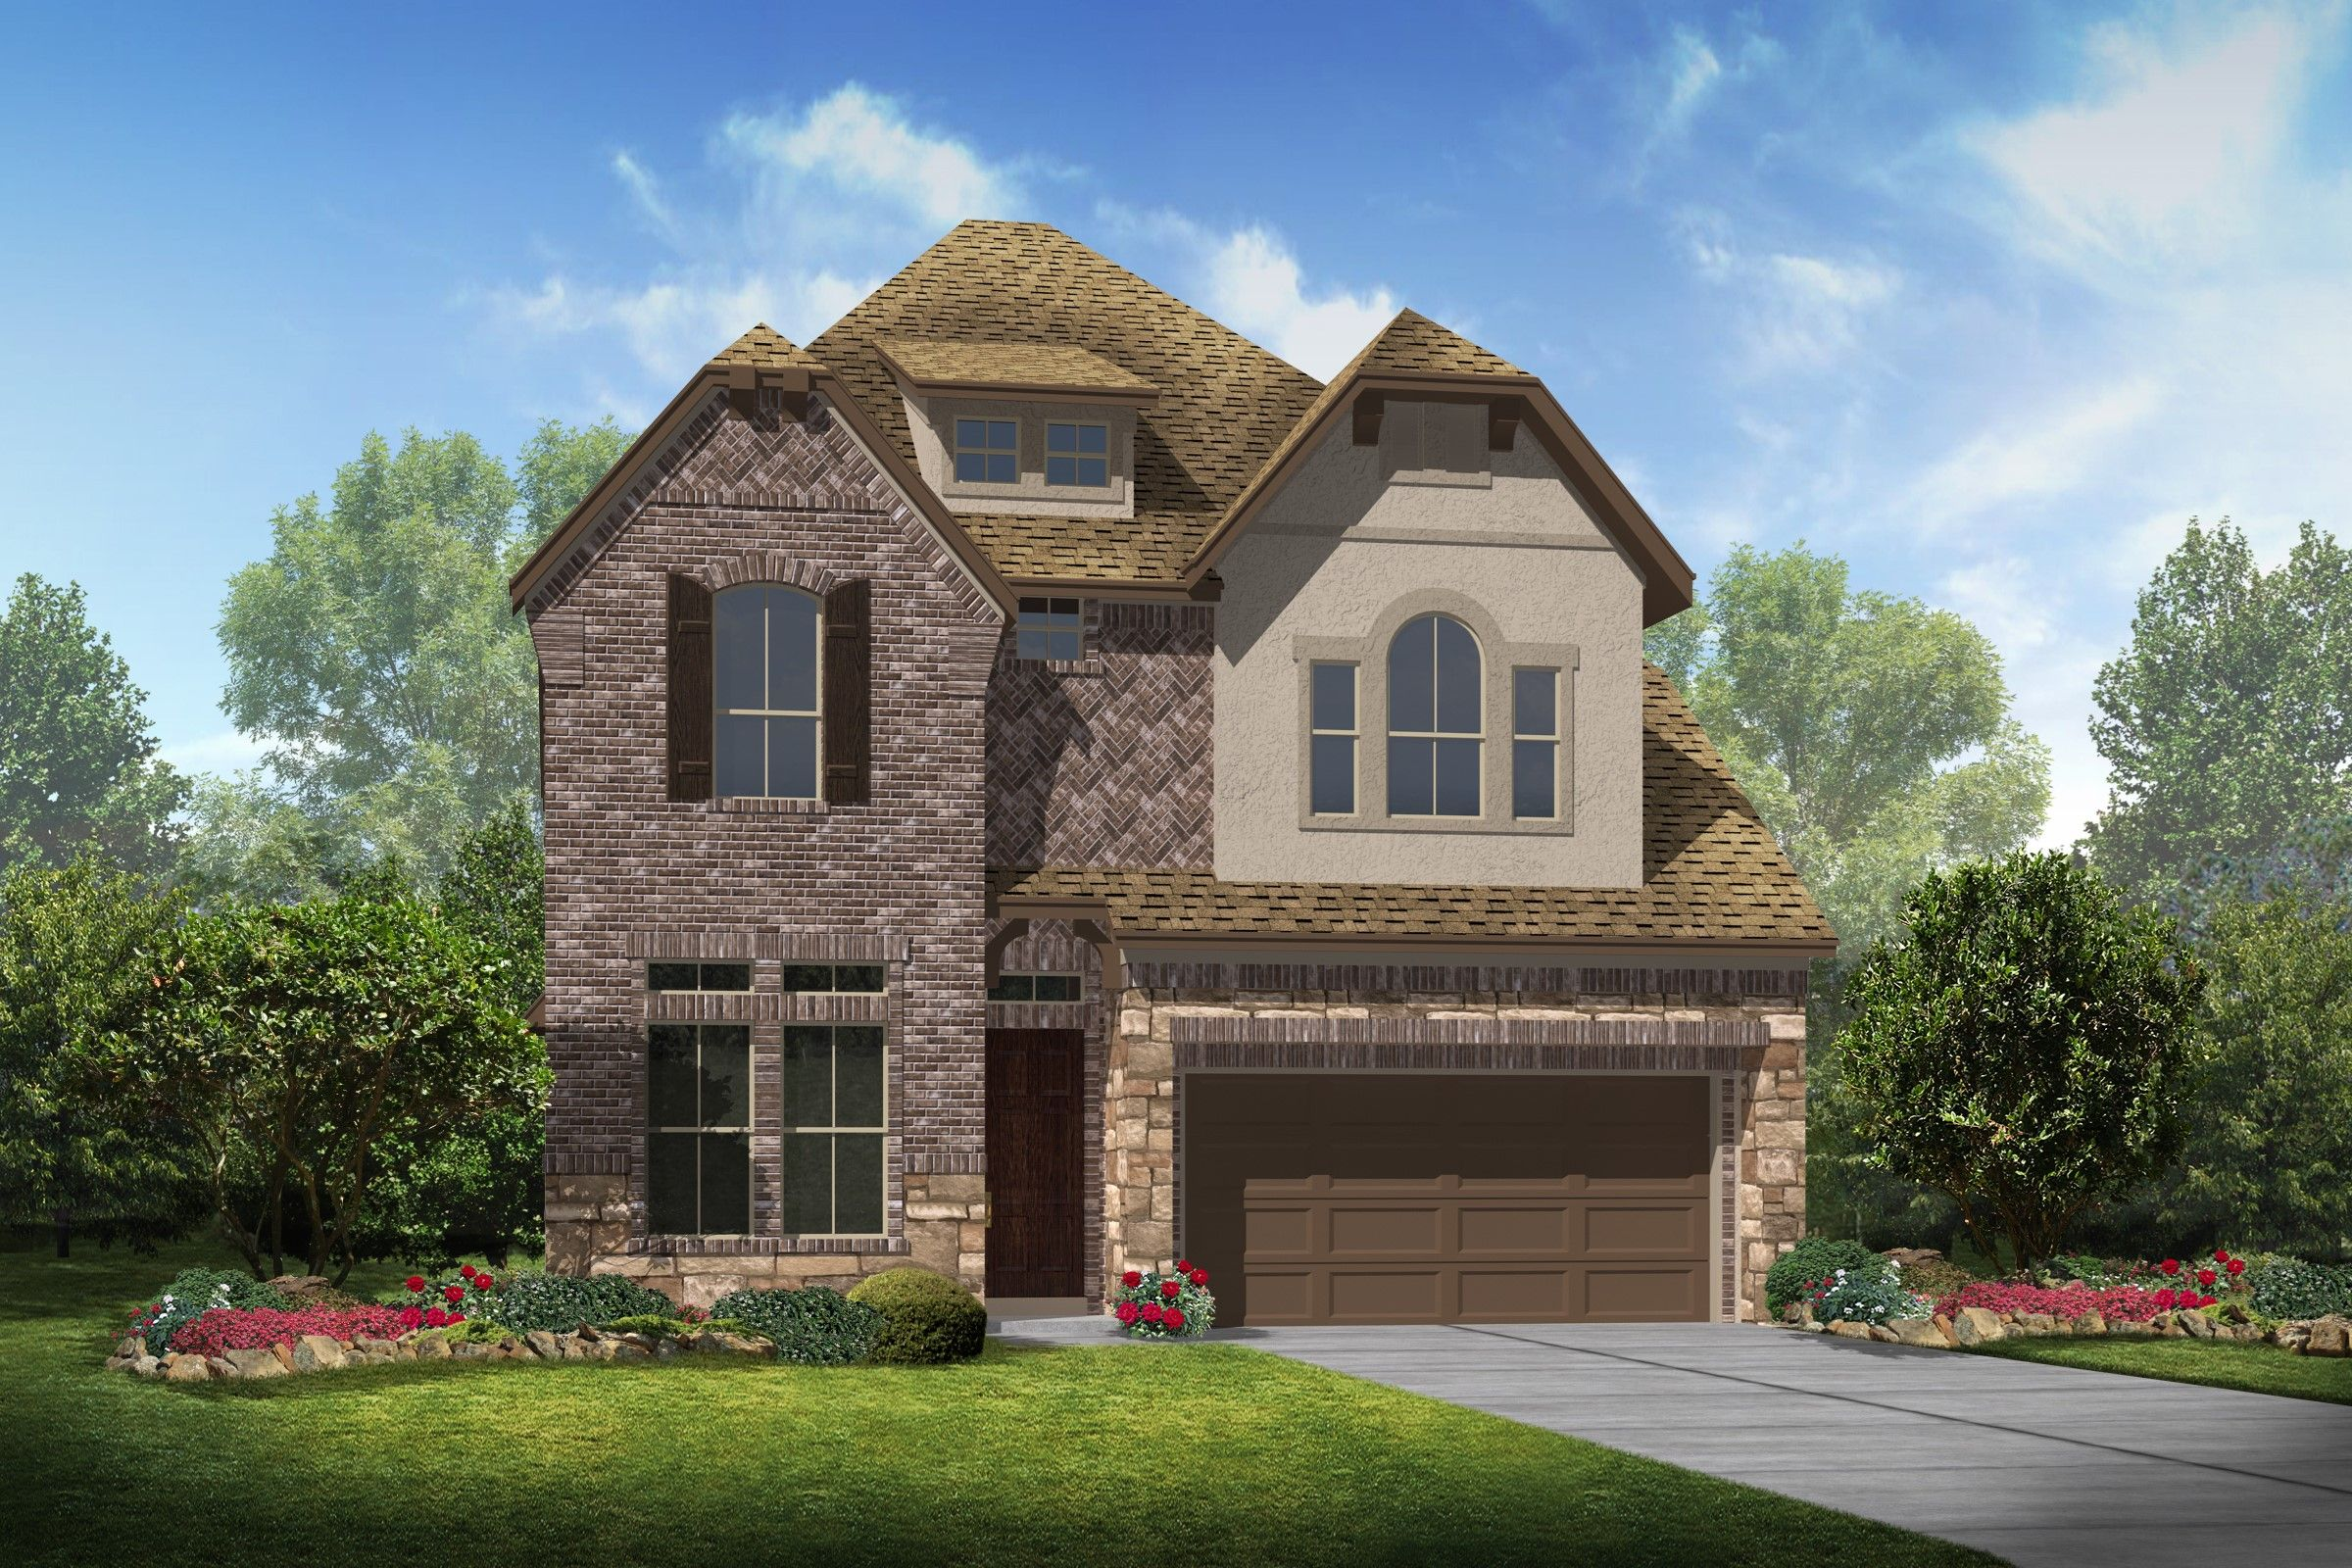 Single Family for Sale at Parkway Terrace - Oliver 2109 Westbourne Park Drive Houston, Texas 77077 United States